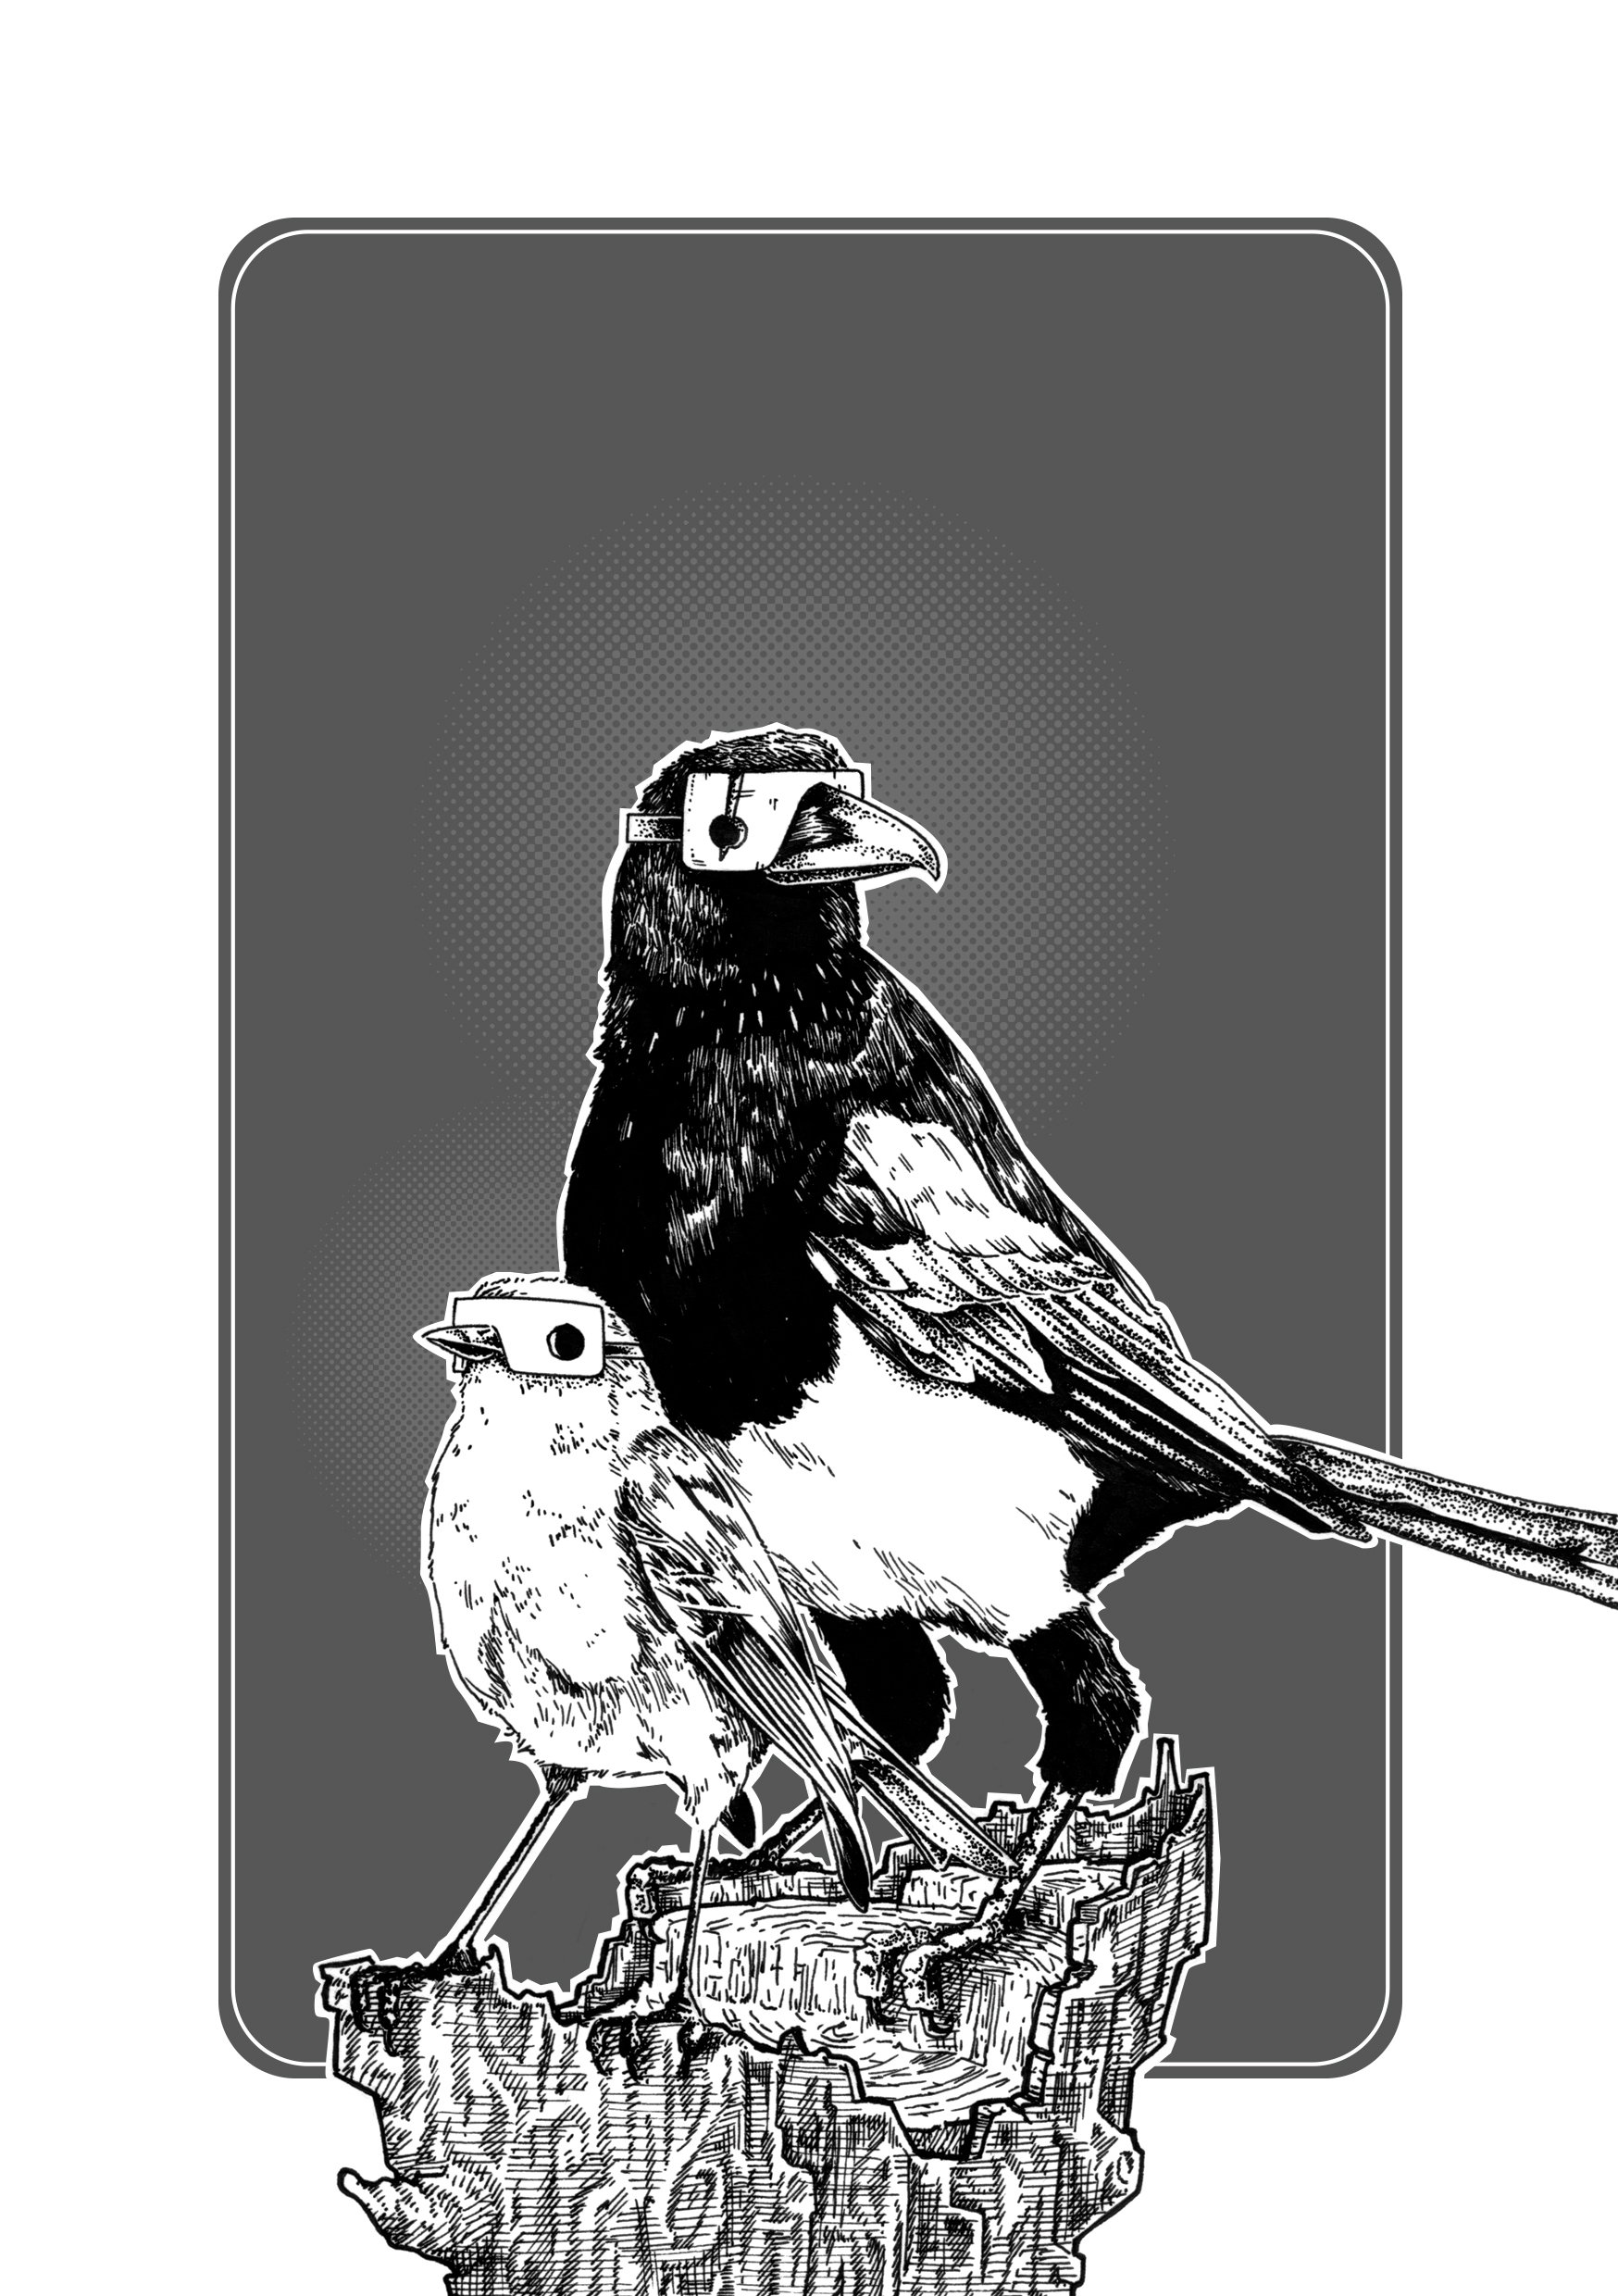 Magpie&Robin Final XL.jpg